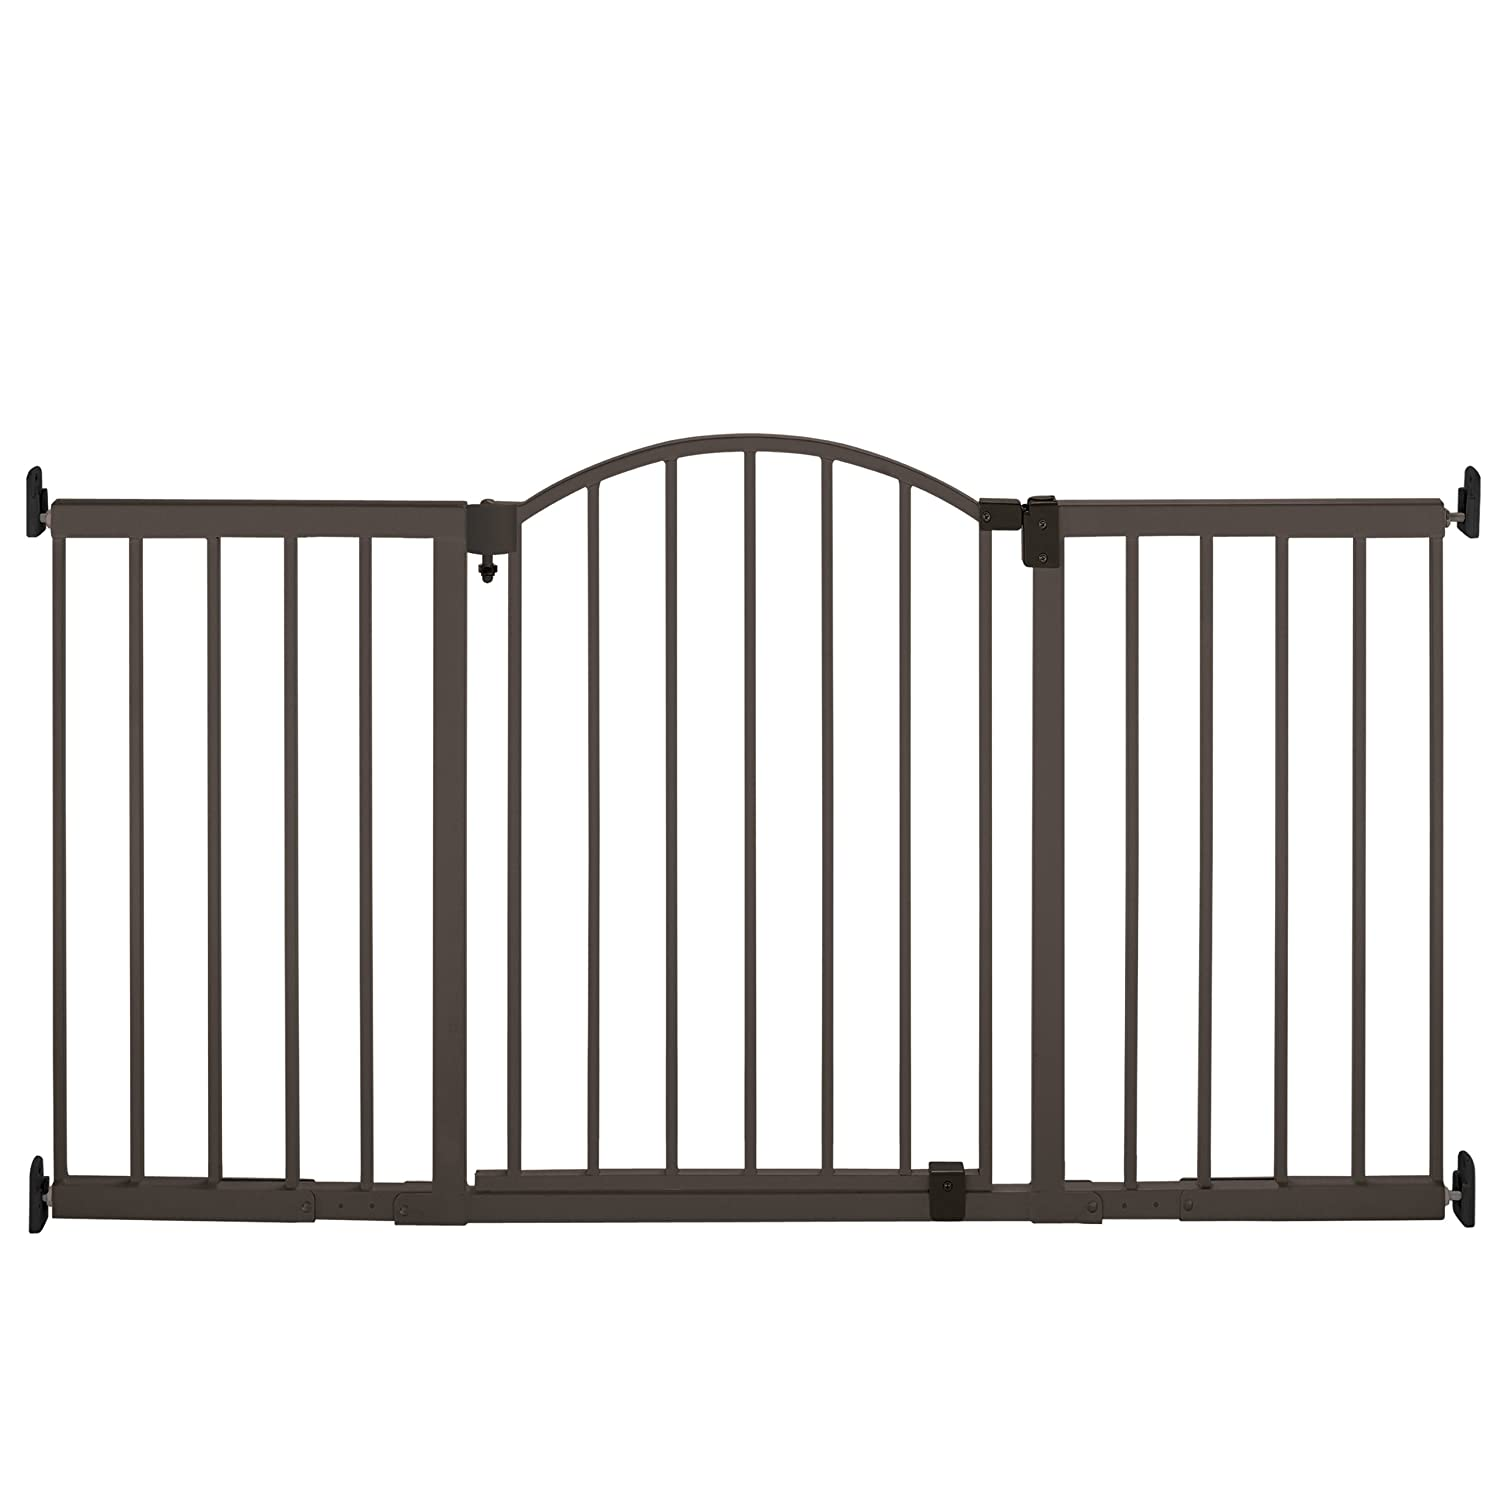 Summer Infant Metal Expansion Gate, 6 Foot Wide Extra Tall Walk-Thru 27270